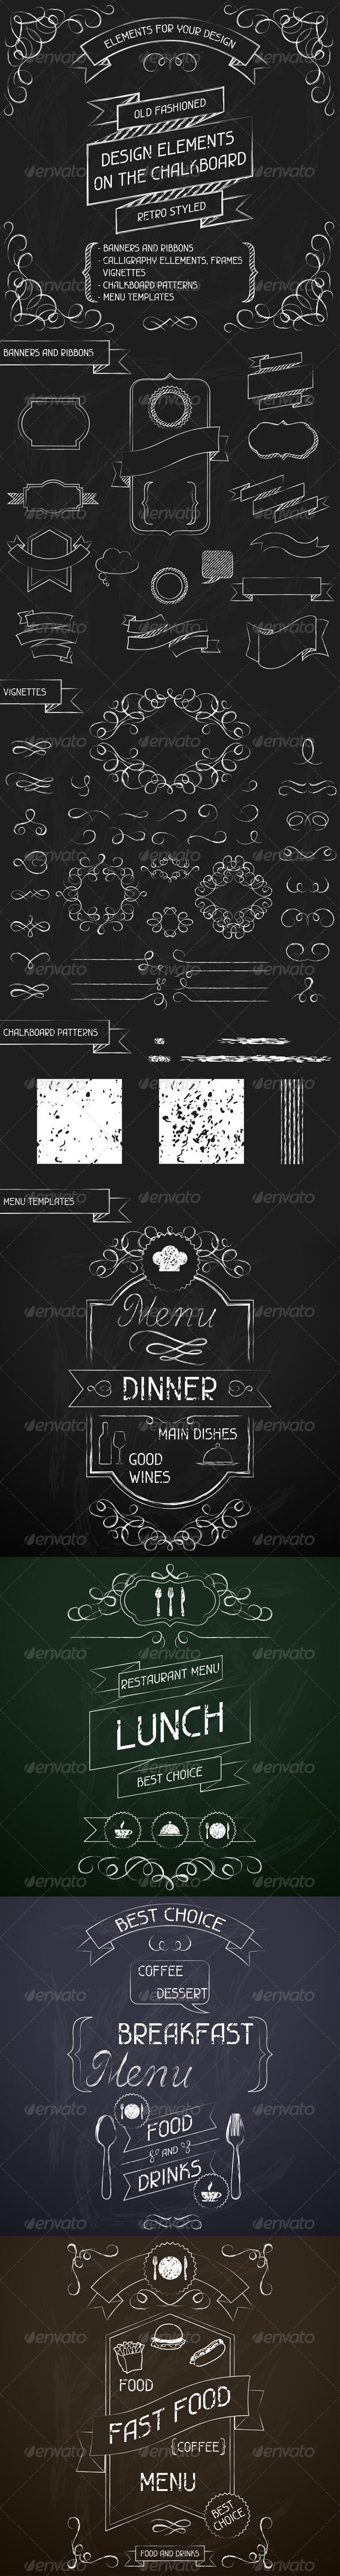 Design Elements on the Chalkboard - Decorative Symbols Decorative: